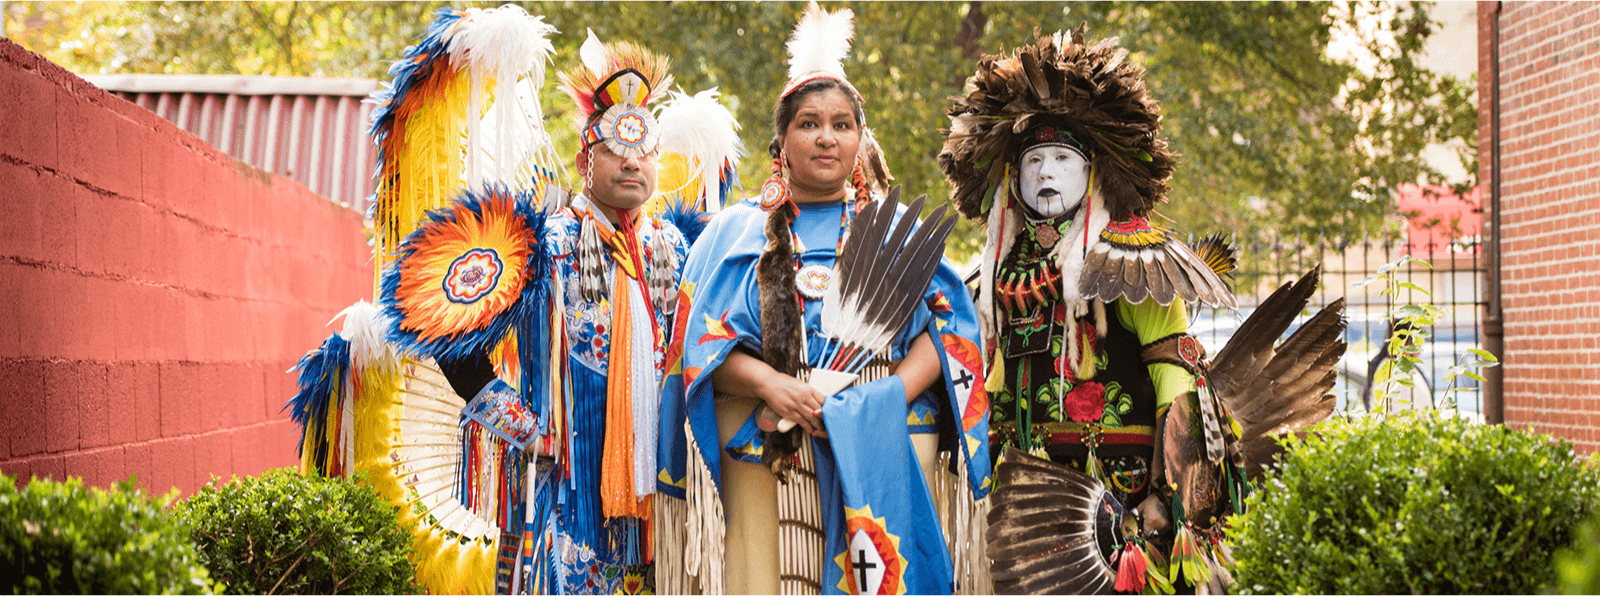 Three people in Lumbee, Tusarora, and Powhatan dress face the camera